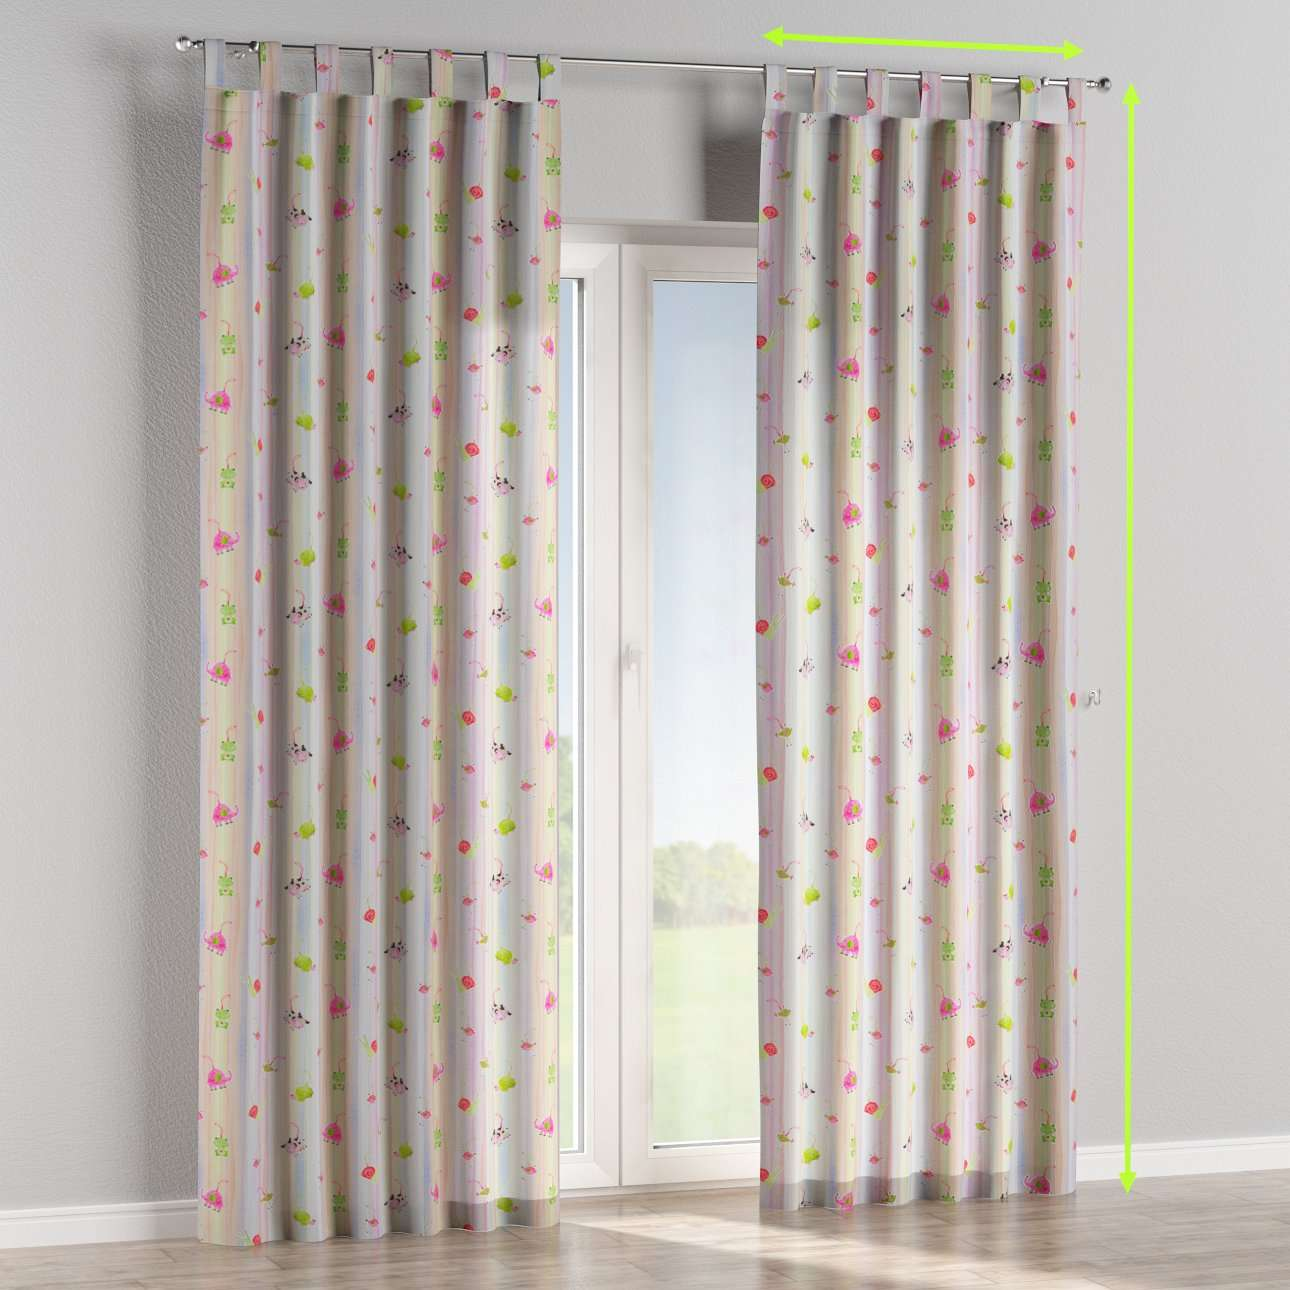 Tab top curtains in collection Apanona, fabric: 151-05